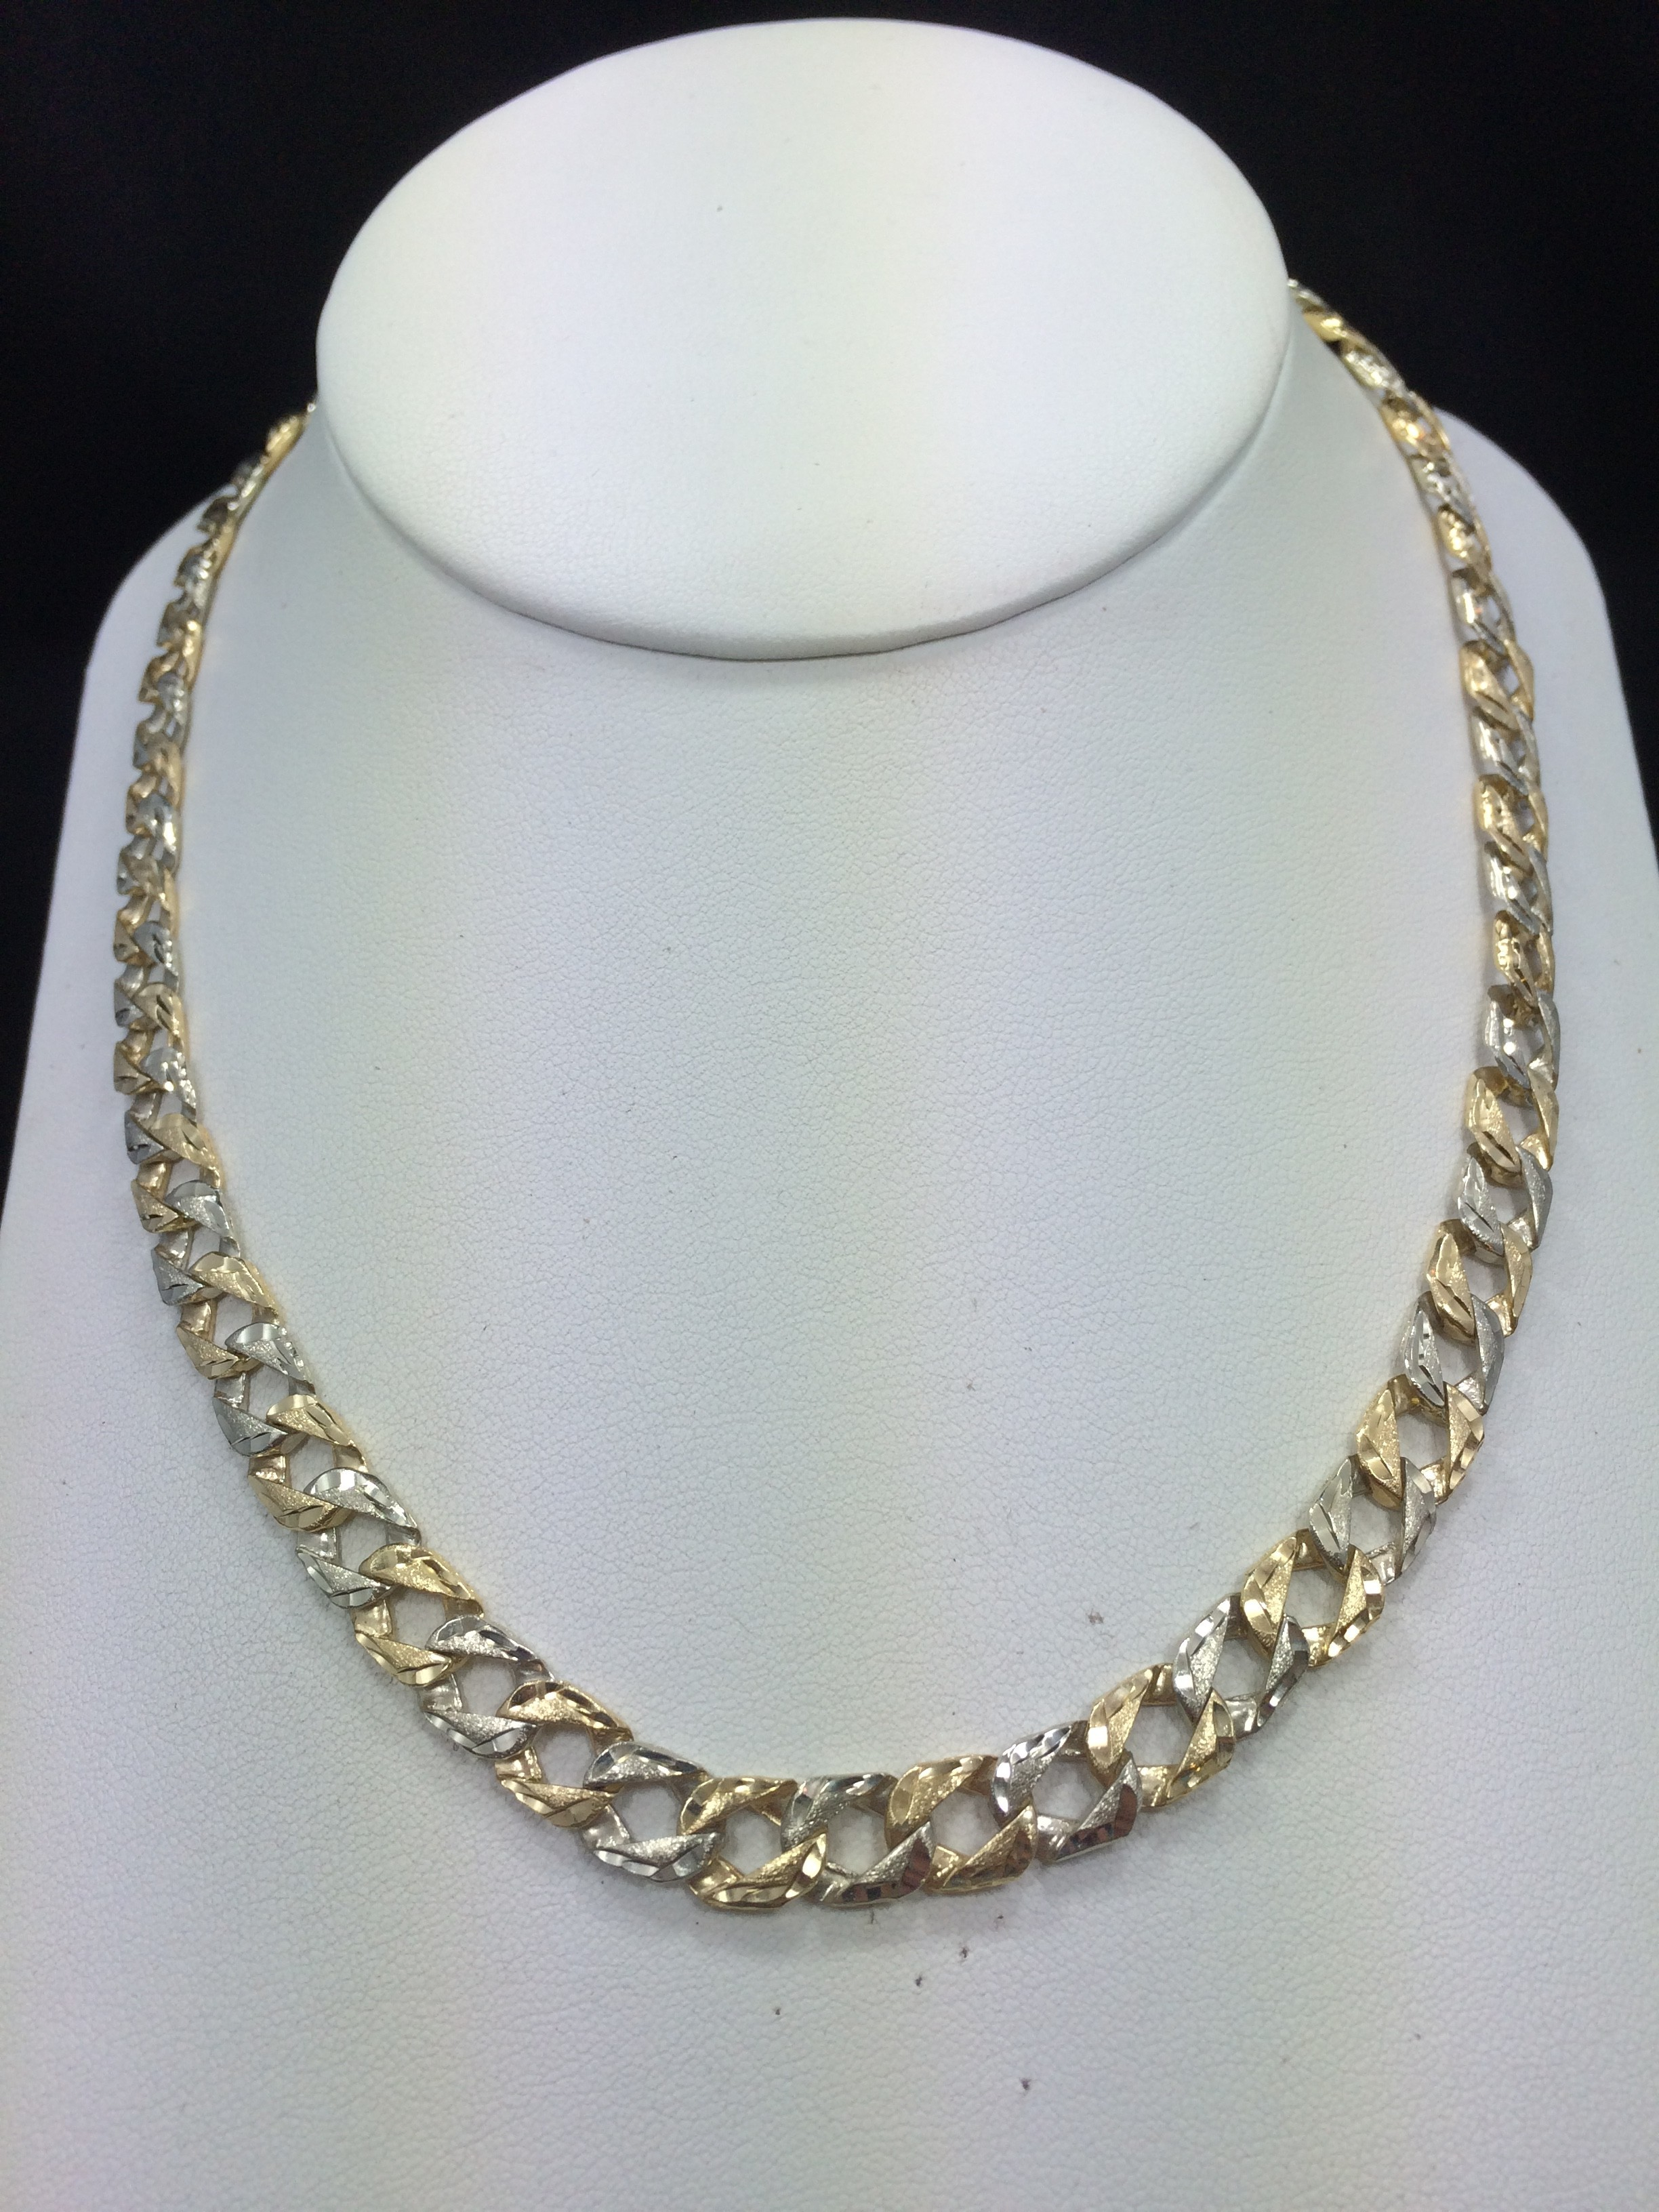 Two tone 10k 53g gold chain